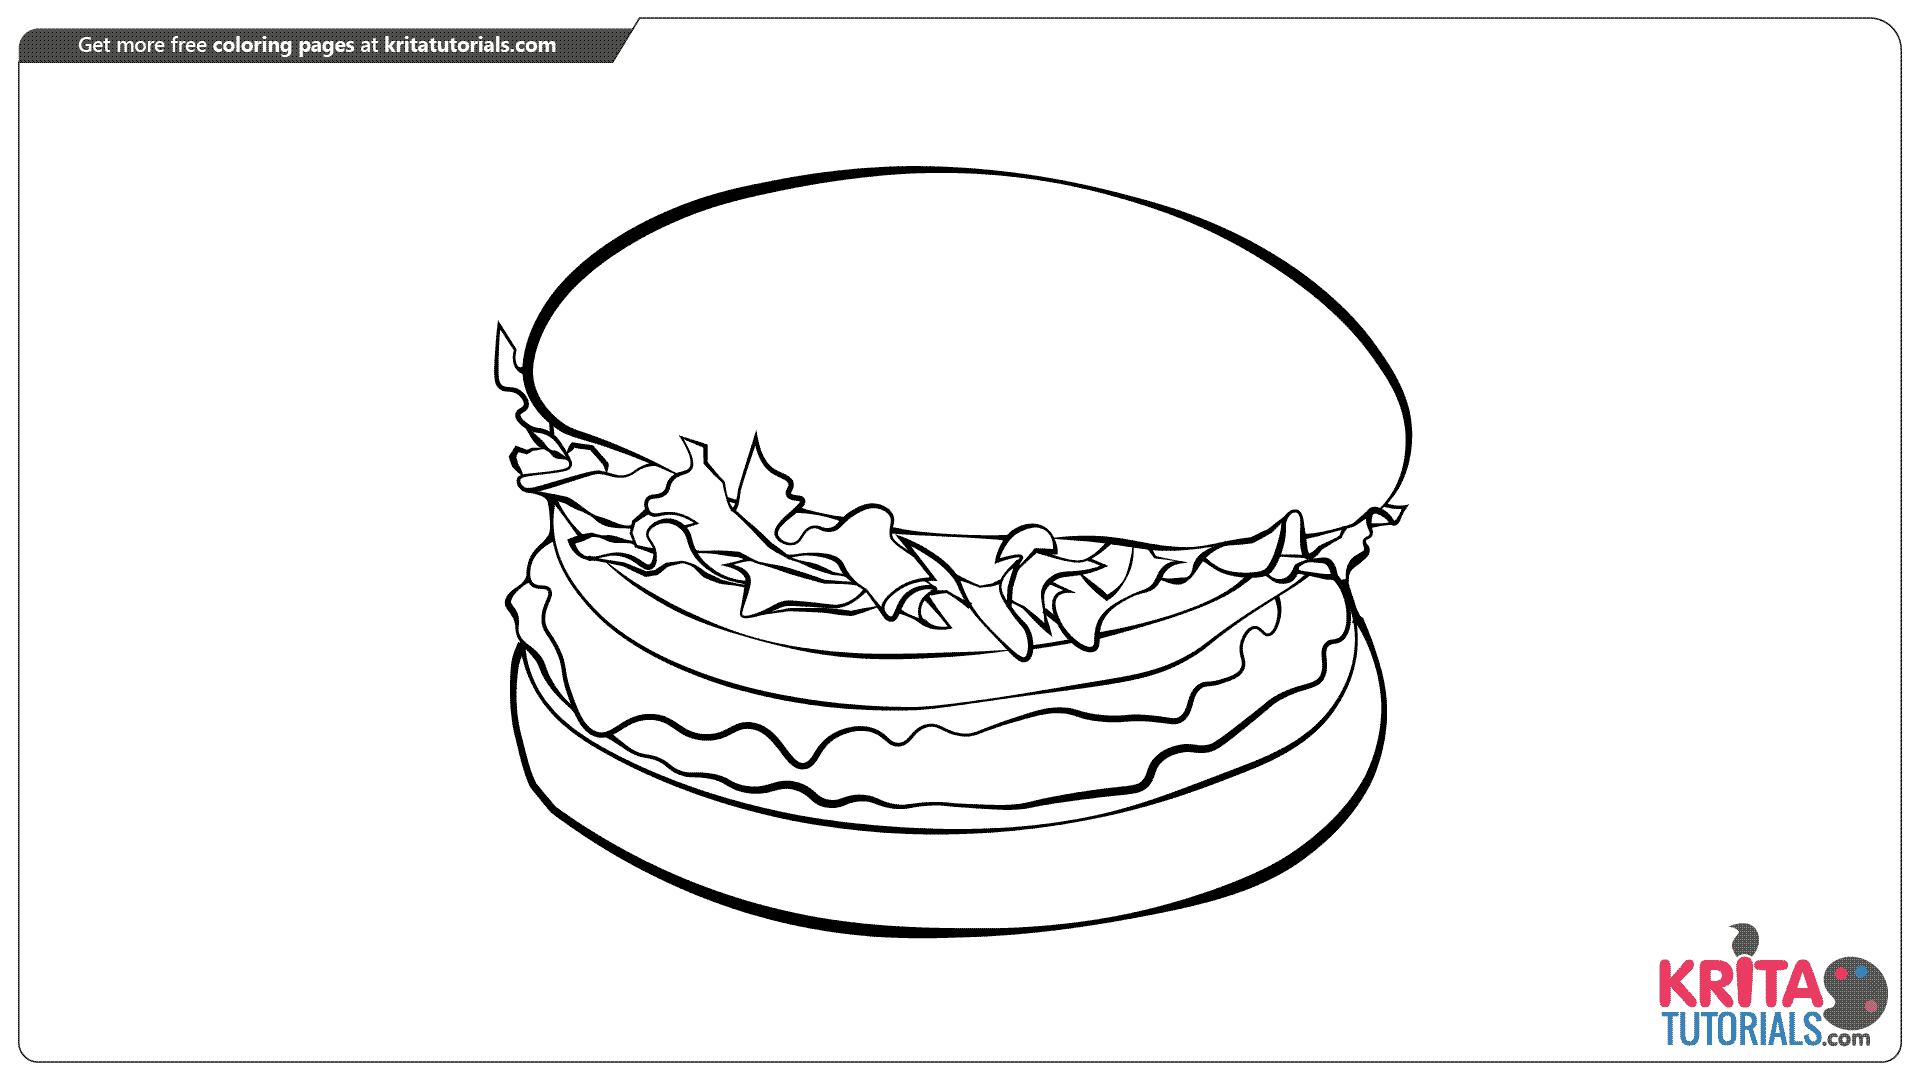 Burger coloring page from kritatutorials.com